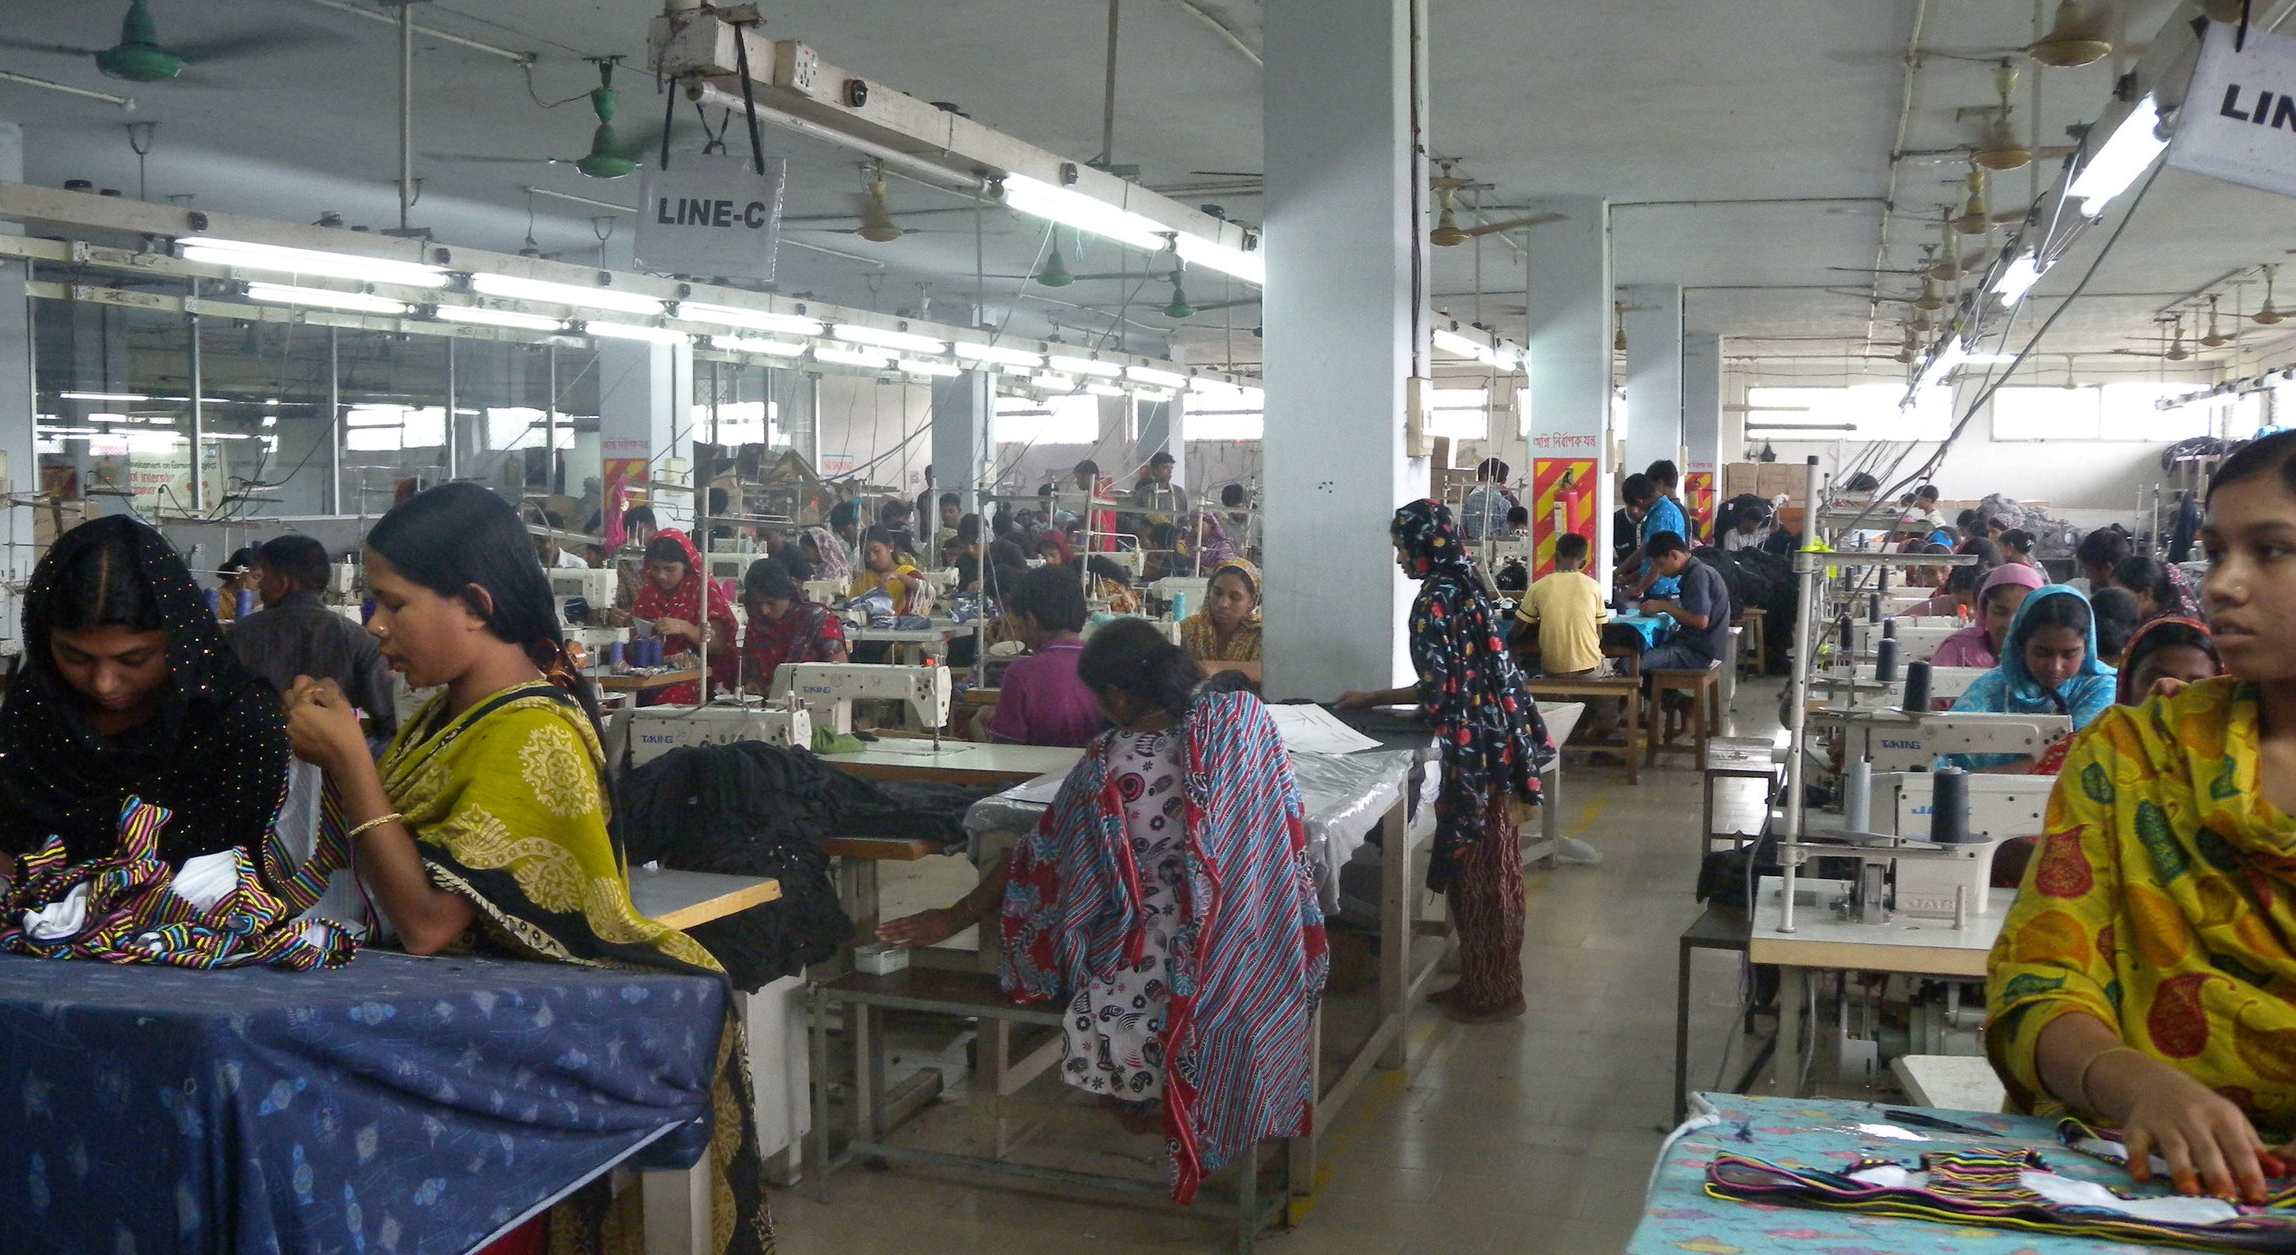 A clothing textile garment factory / assembly line in Bangladesh (Not one of Patagonia's).Photo by: Tareq Salahuddin